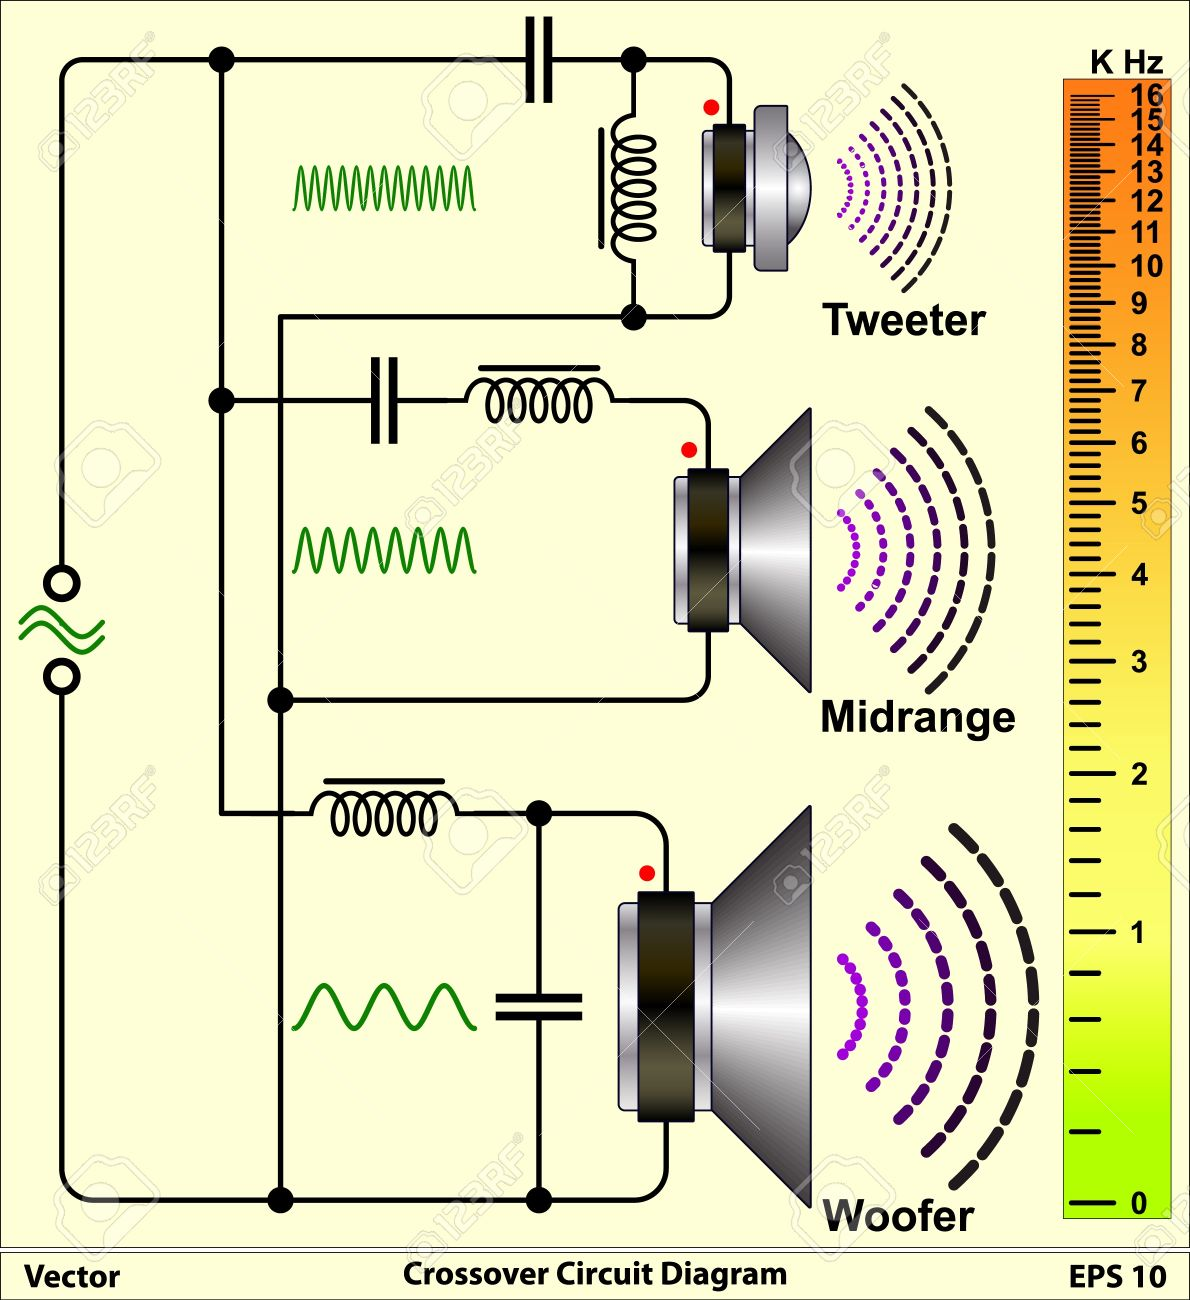 Astonishing Speaker Crossovers Circuit Diagram Royalty Free Cliparts Vectors Wiring Digital Resources Bemuashebarightsorg